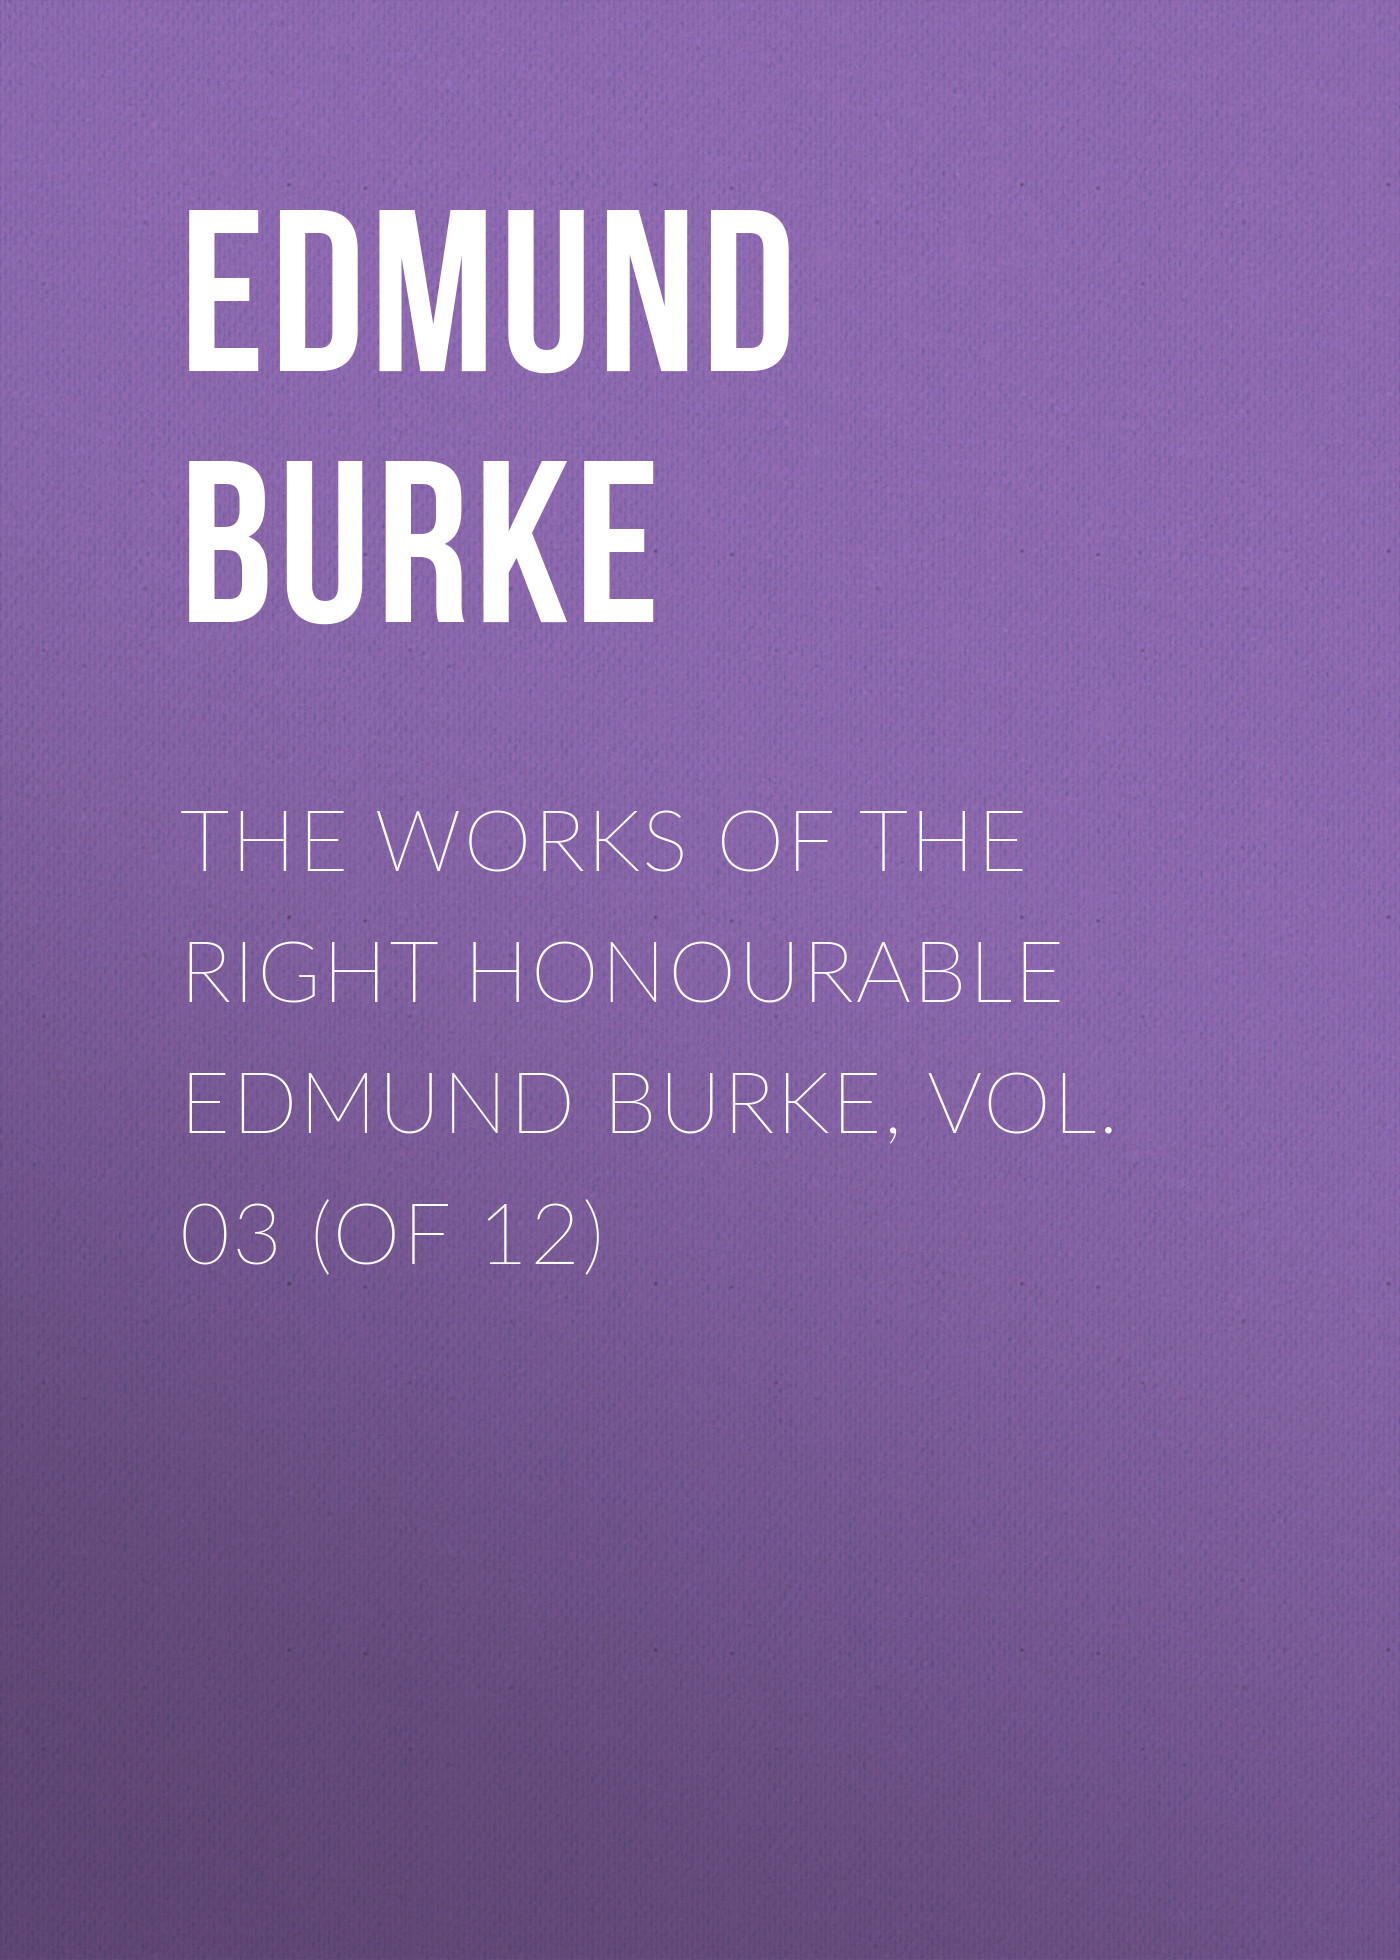 Edmund Burke The Works of the Right Honourable Edmund Burke, Vol. 03 (of 12) burke edmund the speeches of the right honourable edmund burke on the impeachment of warren hastings